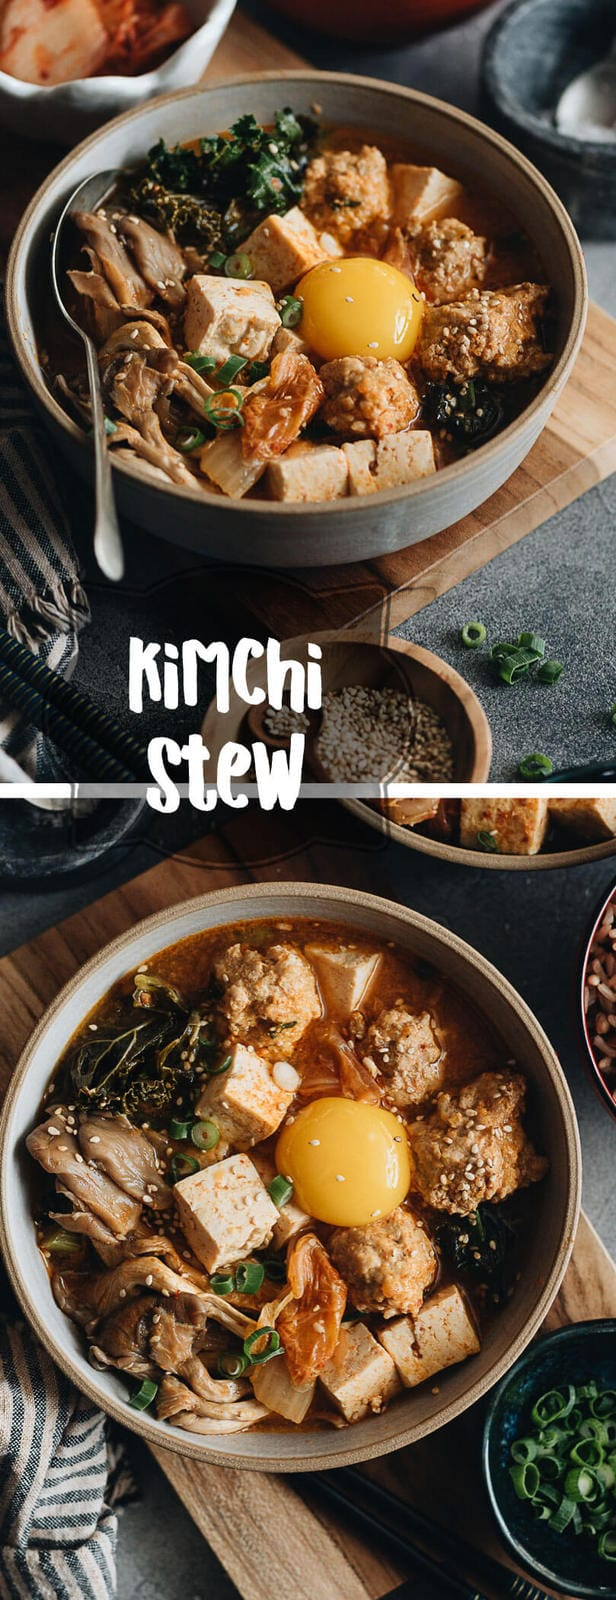 Kimchi Stew with Tofu and Meatballs - A scrumptious one pot dinner loaded with veggies.